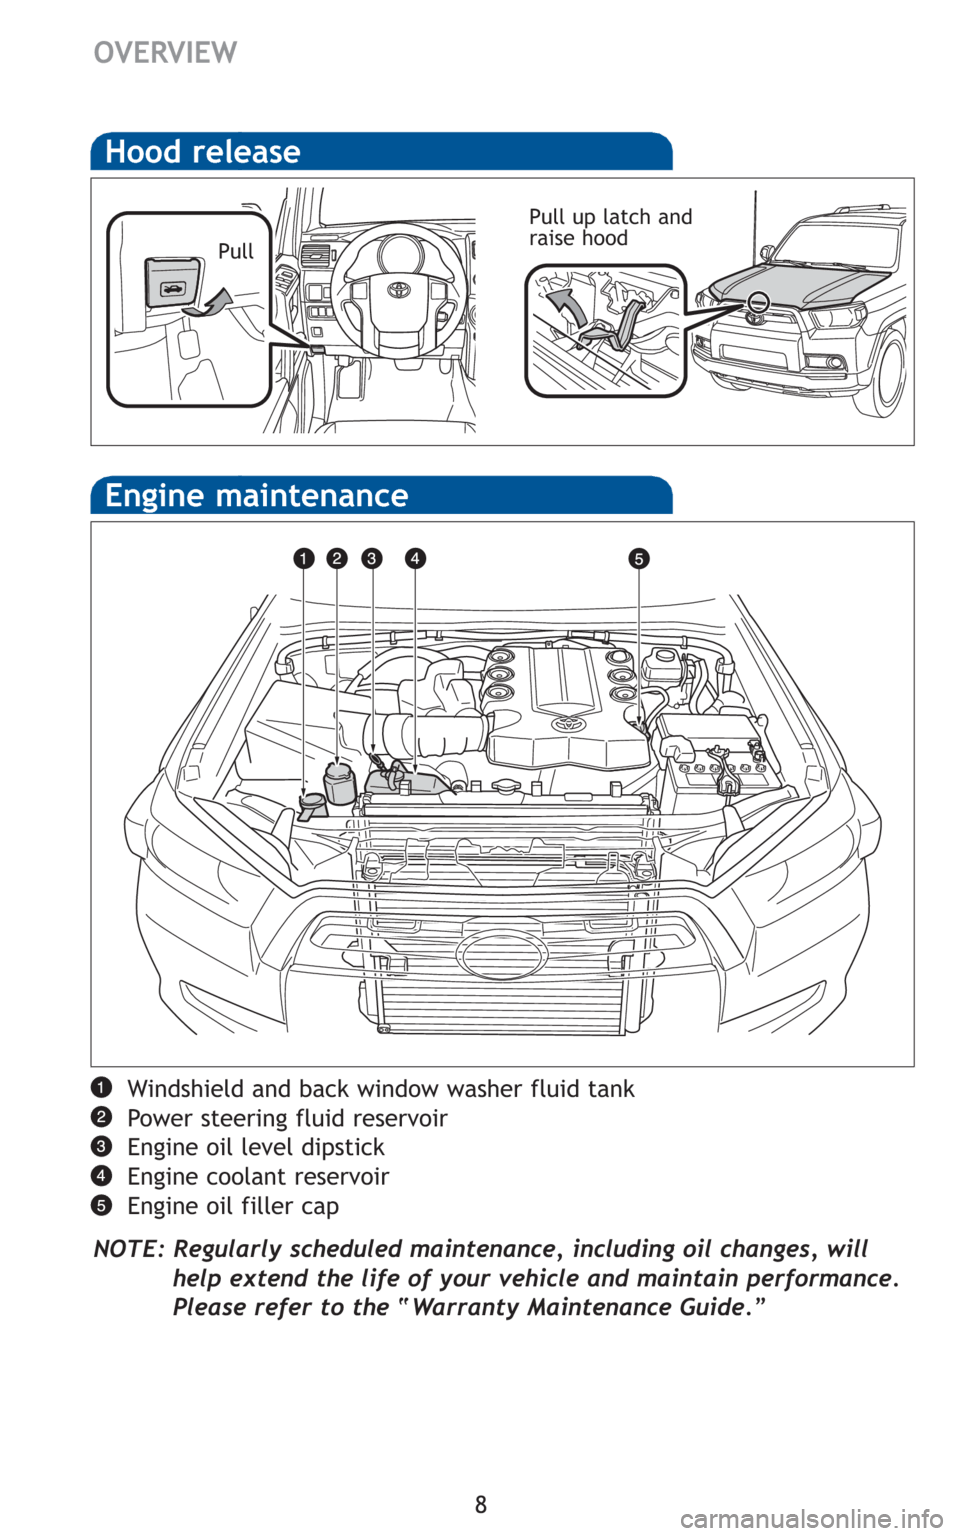 TOYOTA 4RUNNER 2010 N280 / 5.G Quick Reference Guide